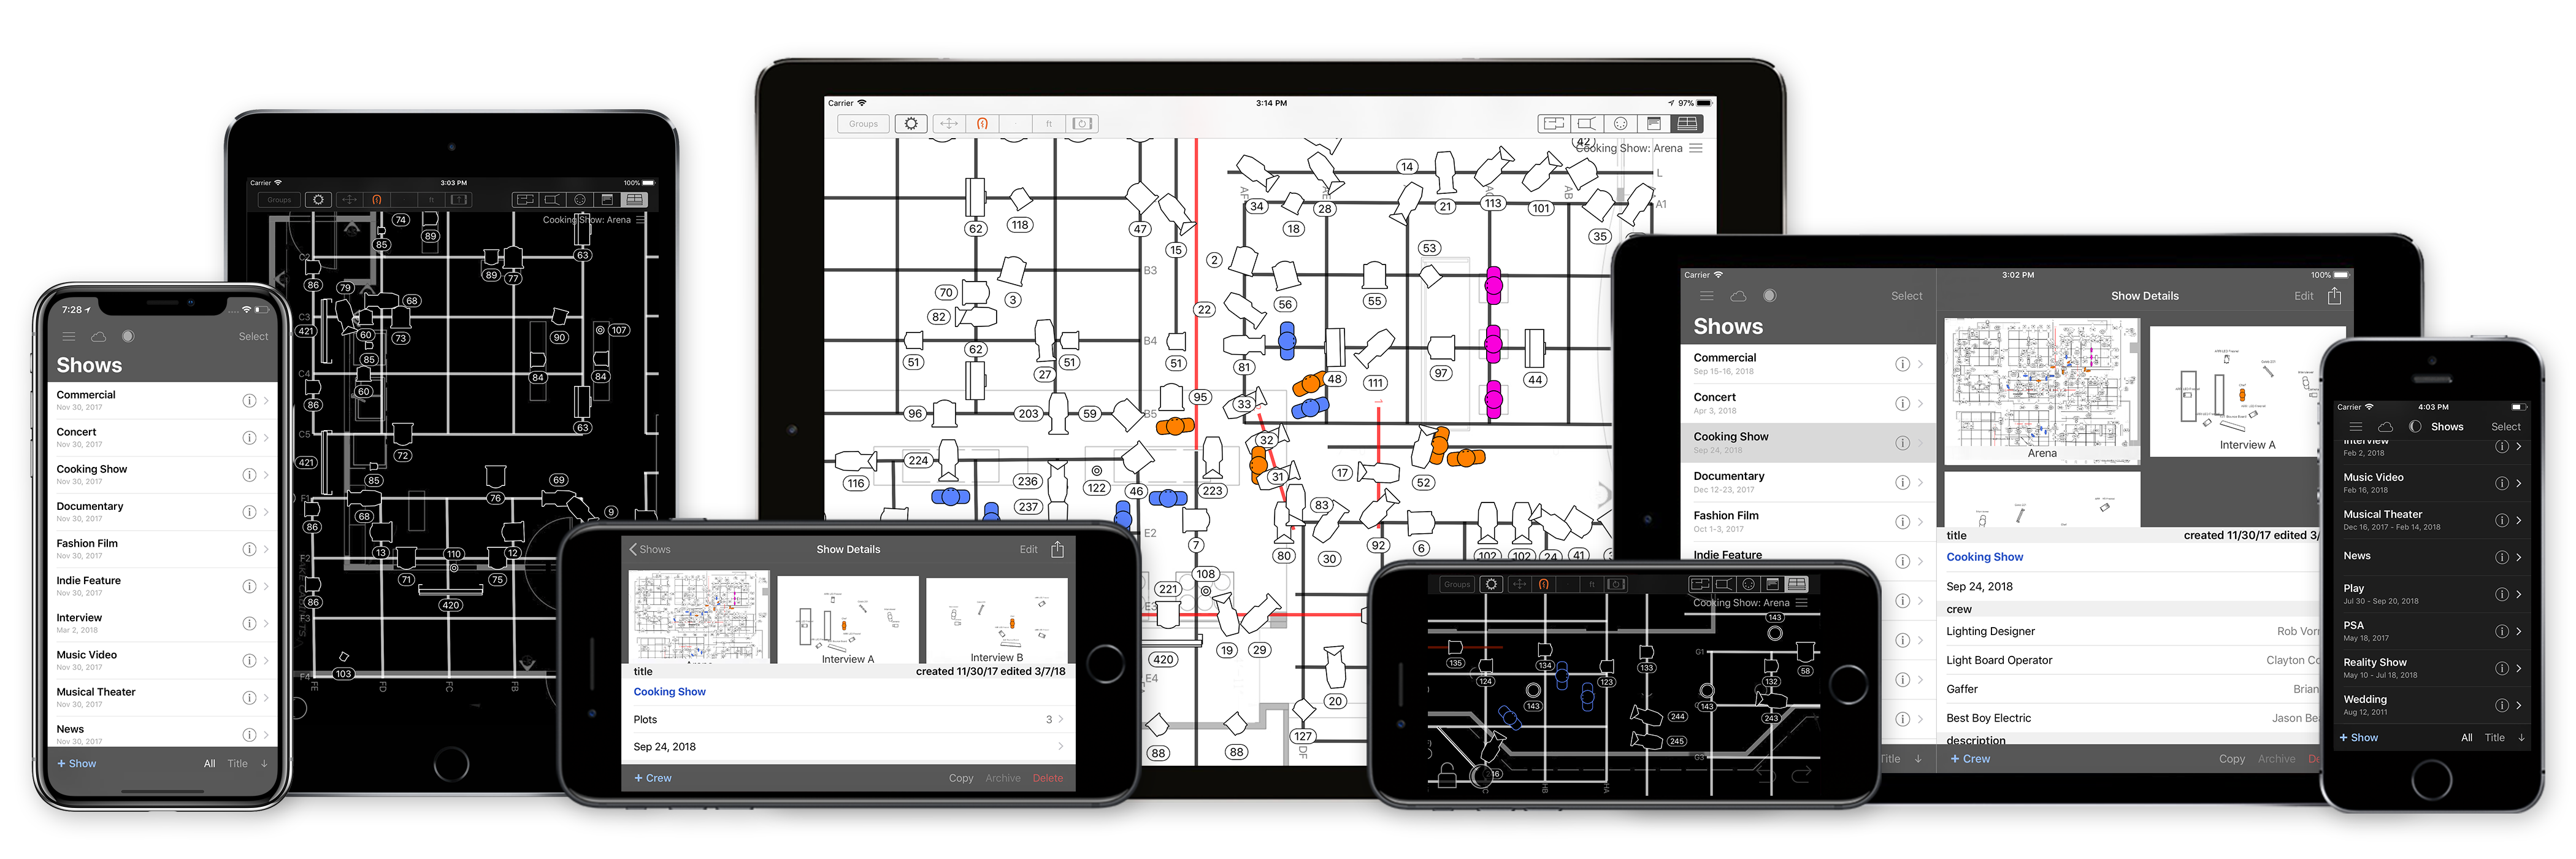 Lighting Designer lighting plots for iOS